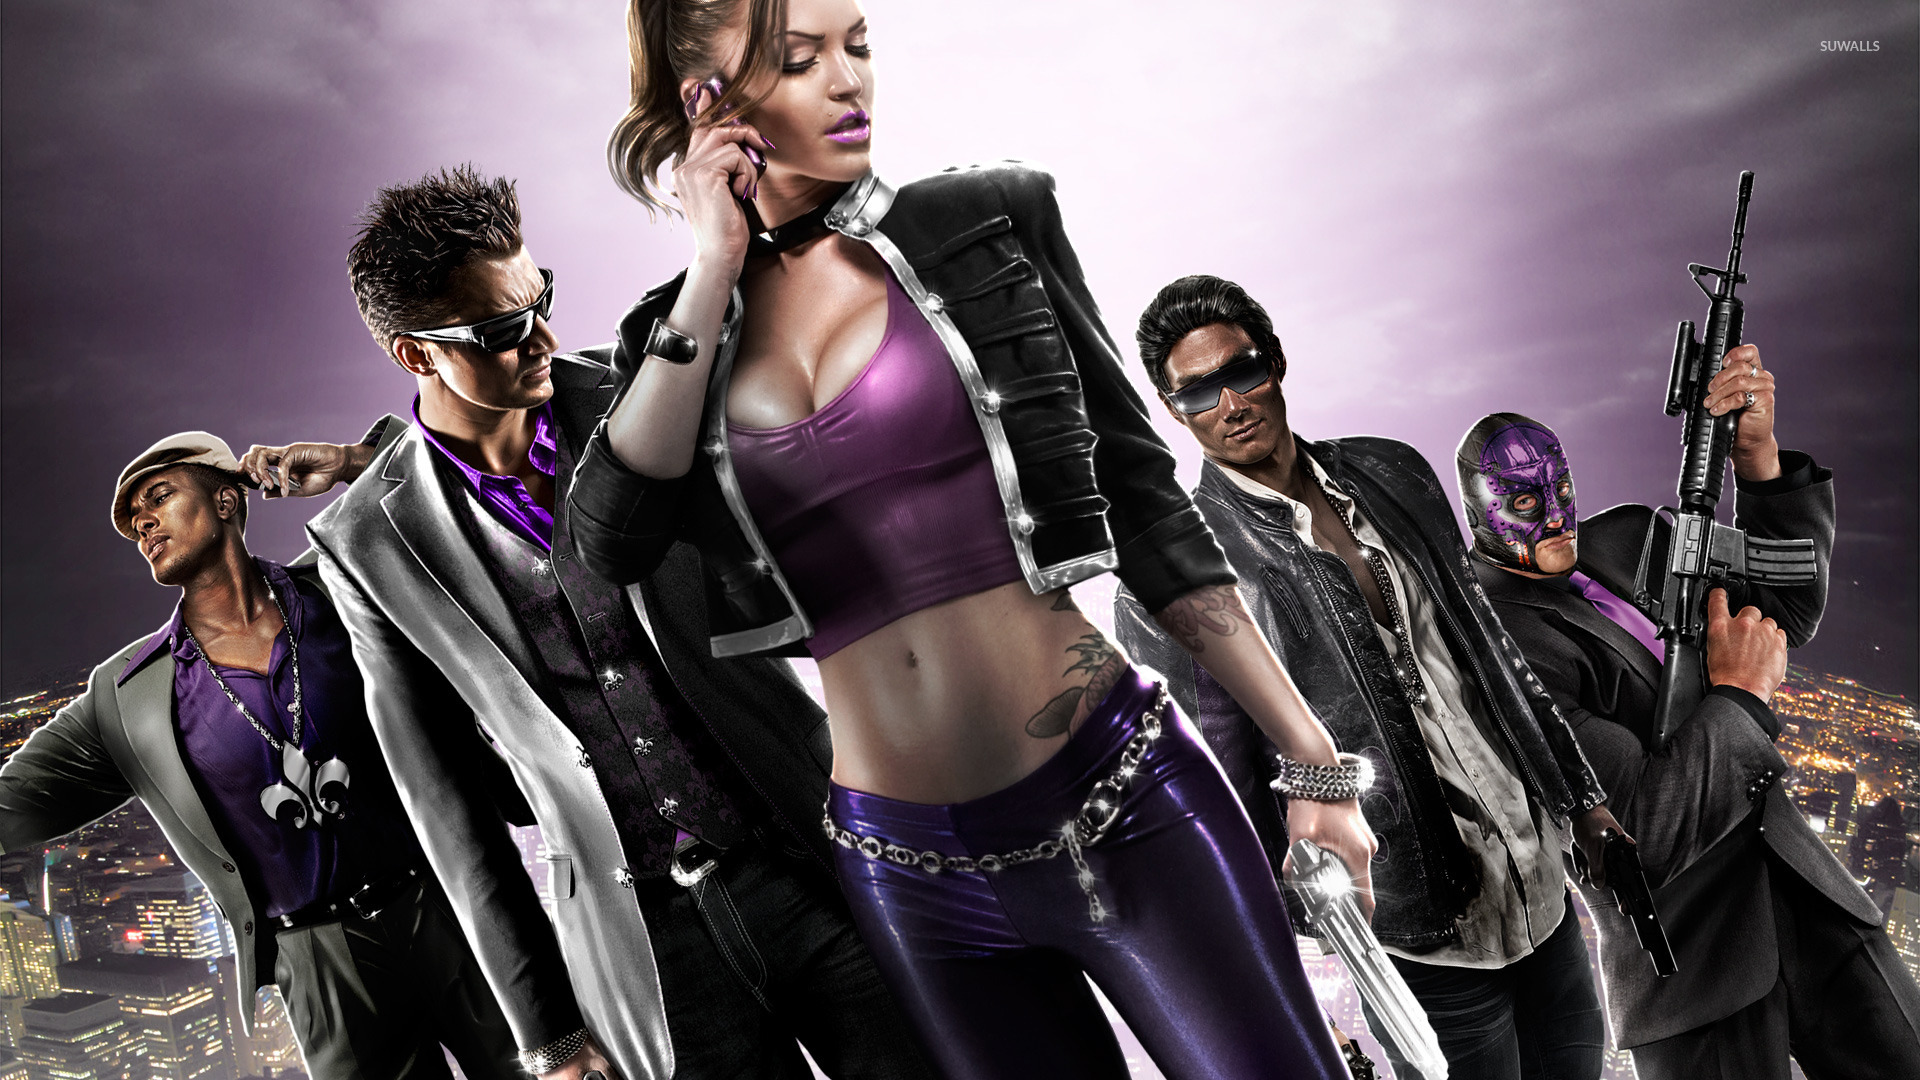 Saints Row Iv 3 Wallpaper Game Wallpapers 23044